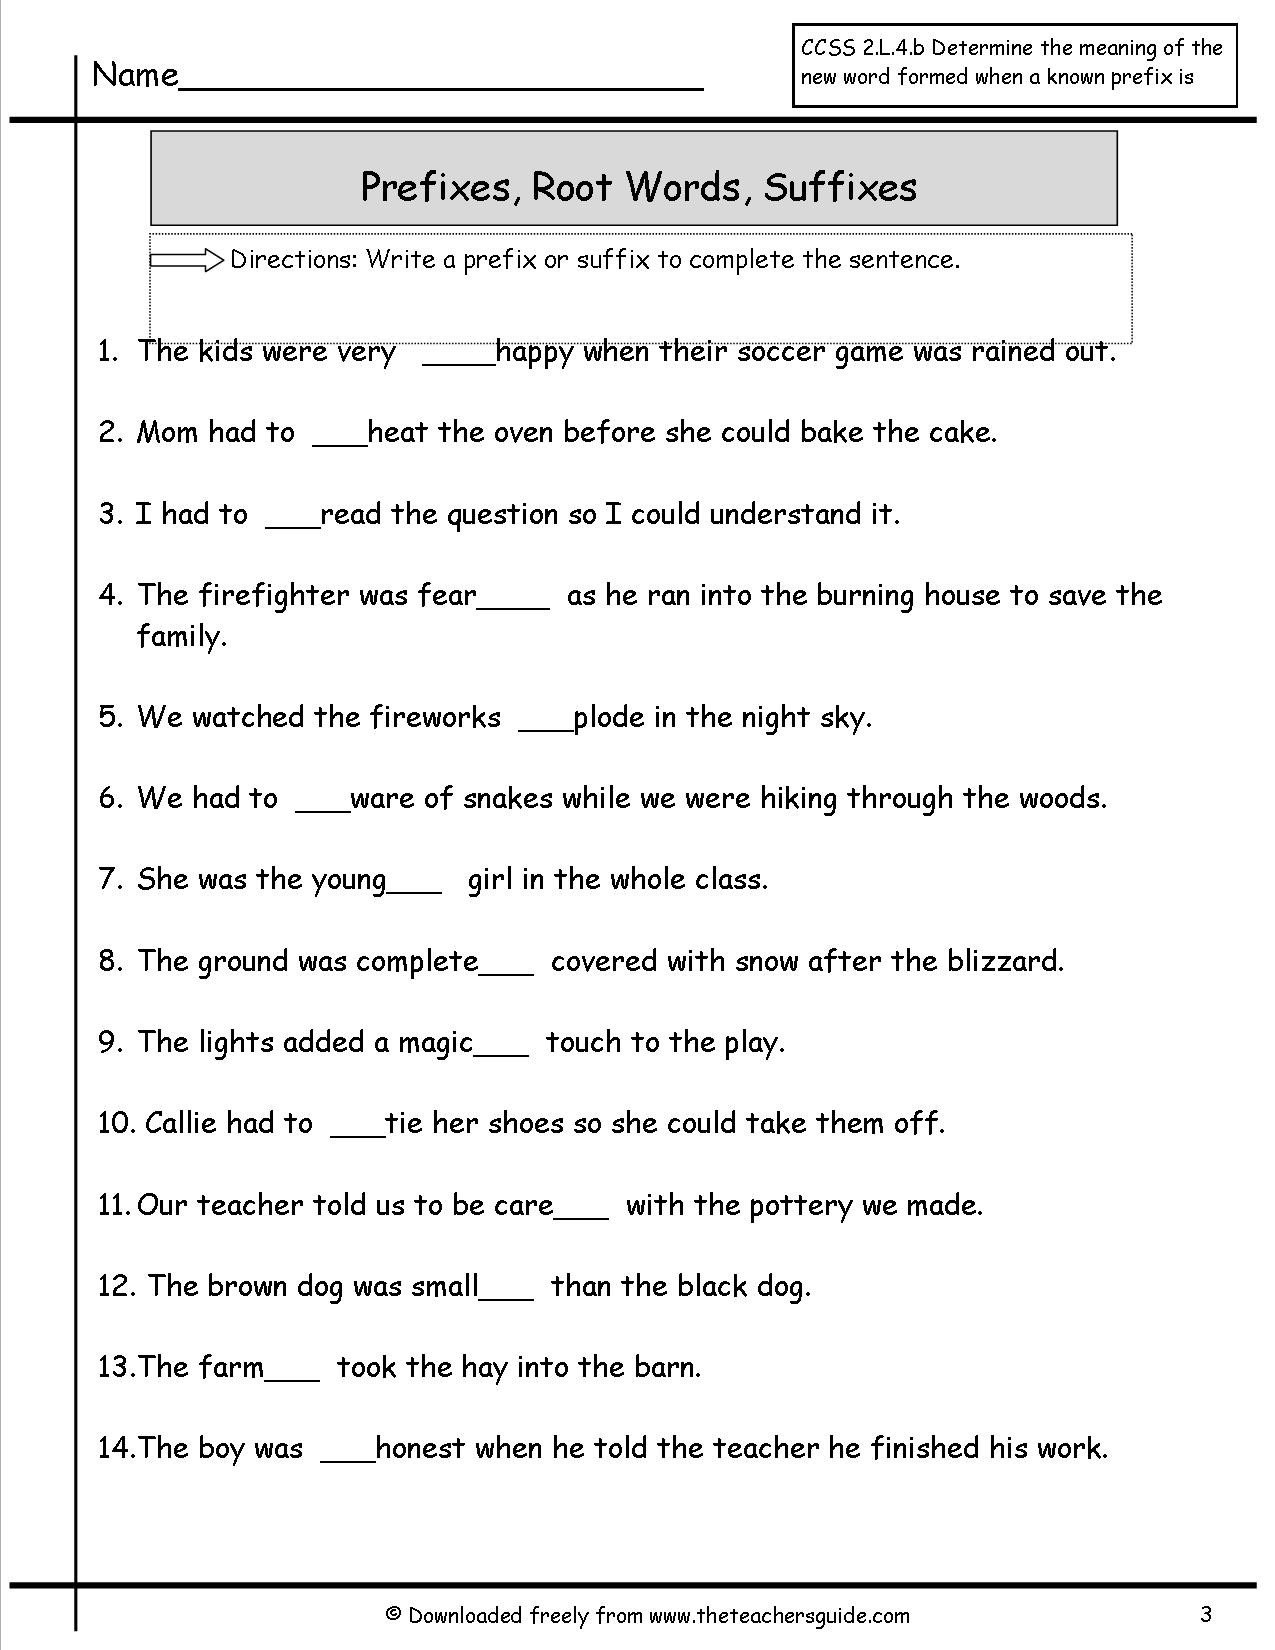 Prefix Suffix Worksheet 3rd Grade Awesome Prefixes and Suffixes Worksheet